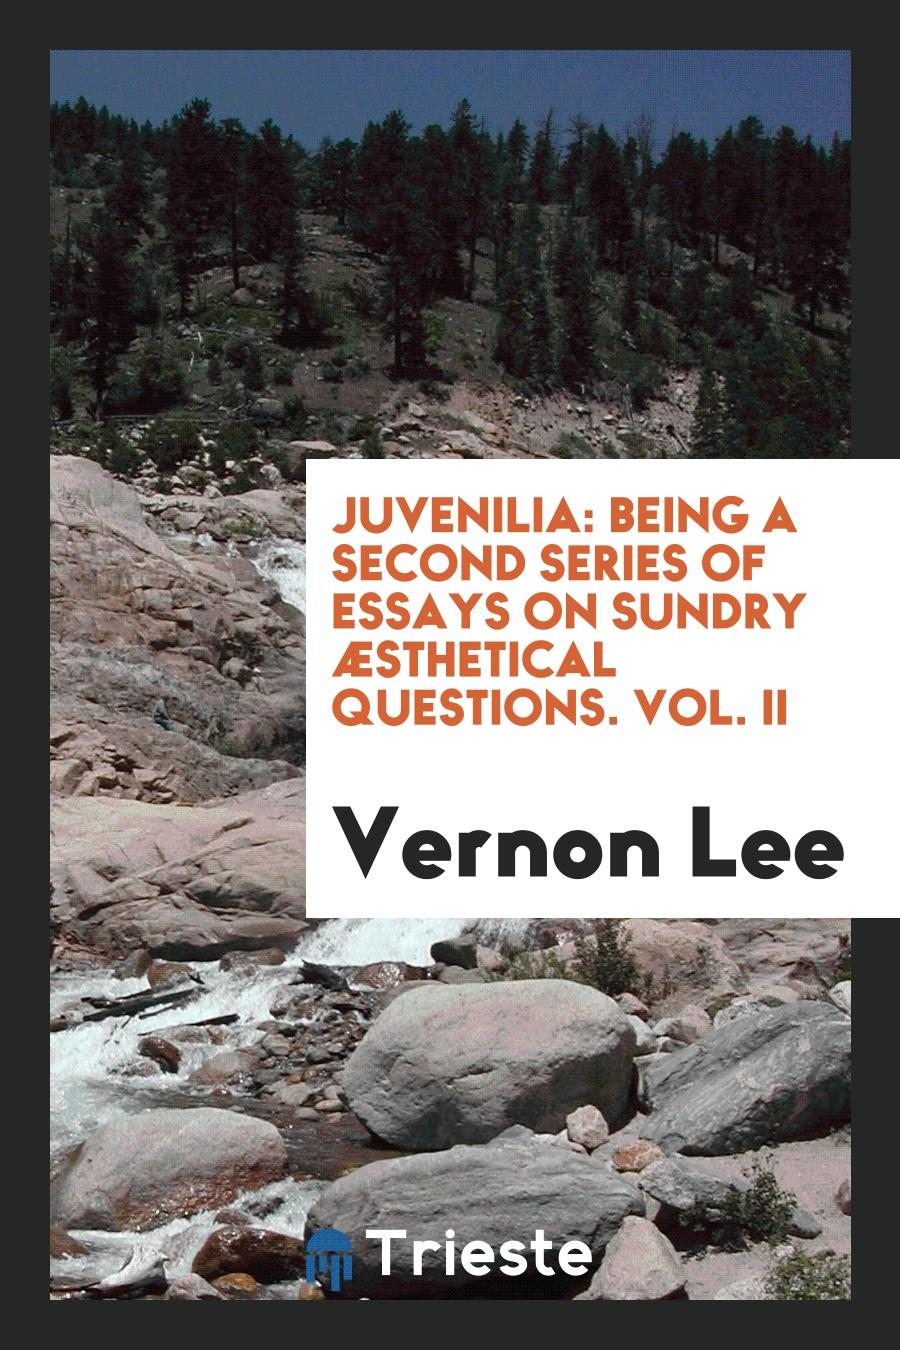 Juvenilia: Being a Second Series of Essays on Sundry ÆSthetical Questions. Vol. II